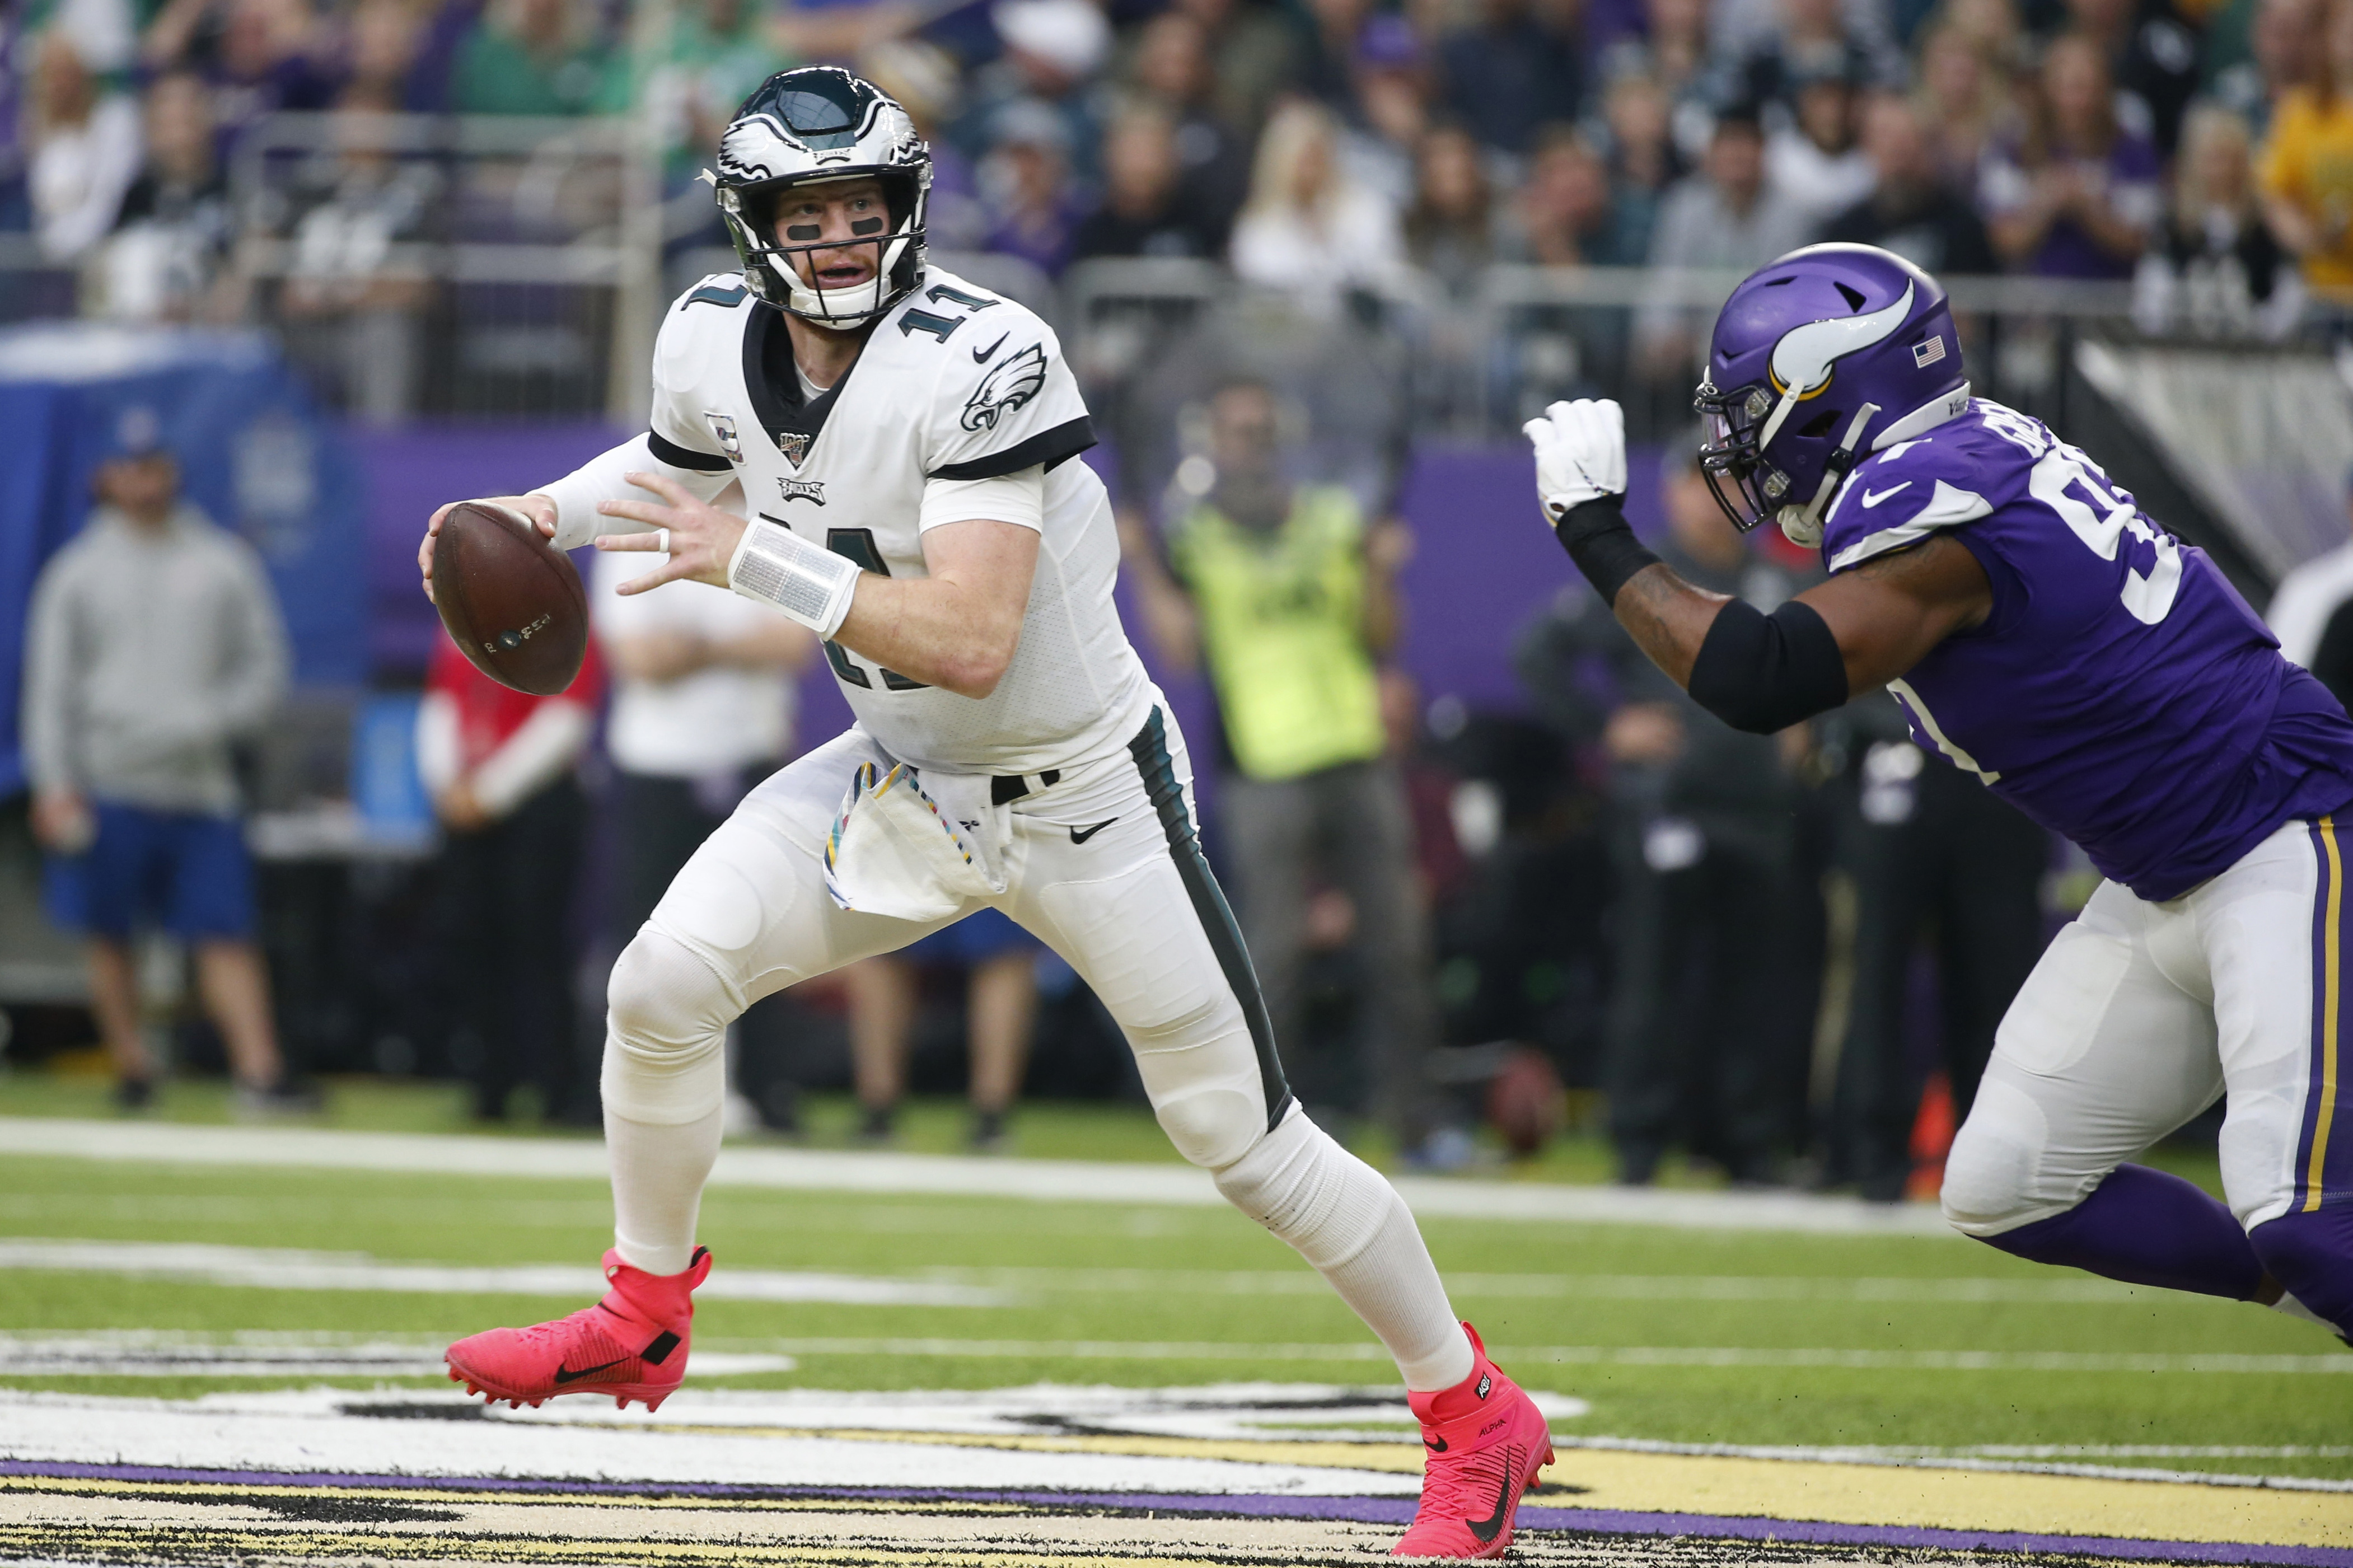 Eagles' Carson Wentz's strong showing isn't enough to overcome multiple blunders in loss to Vikings | Week 6 QB report card